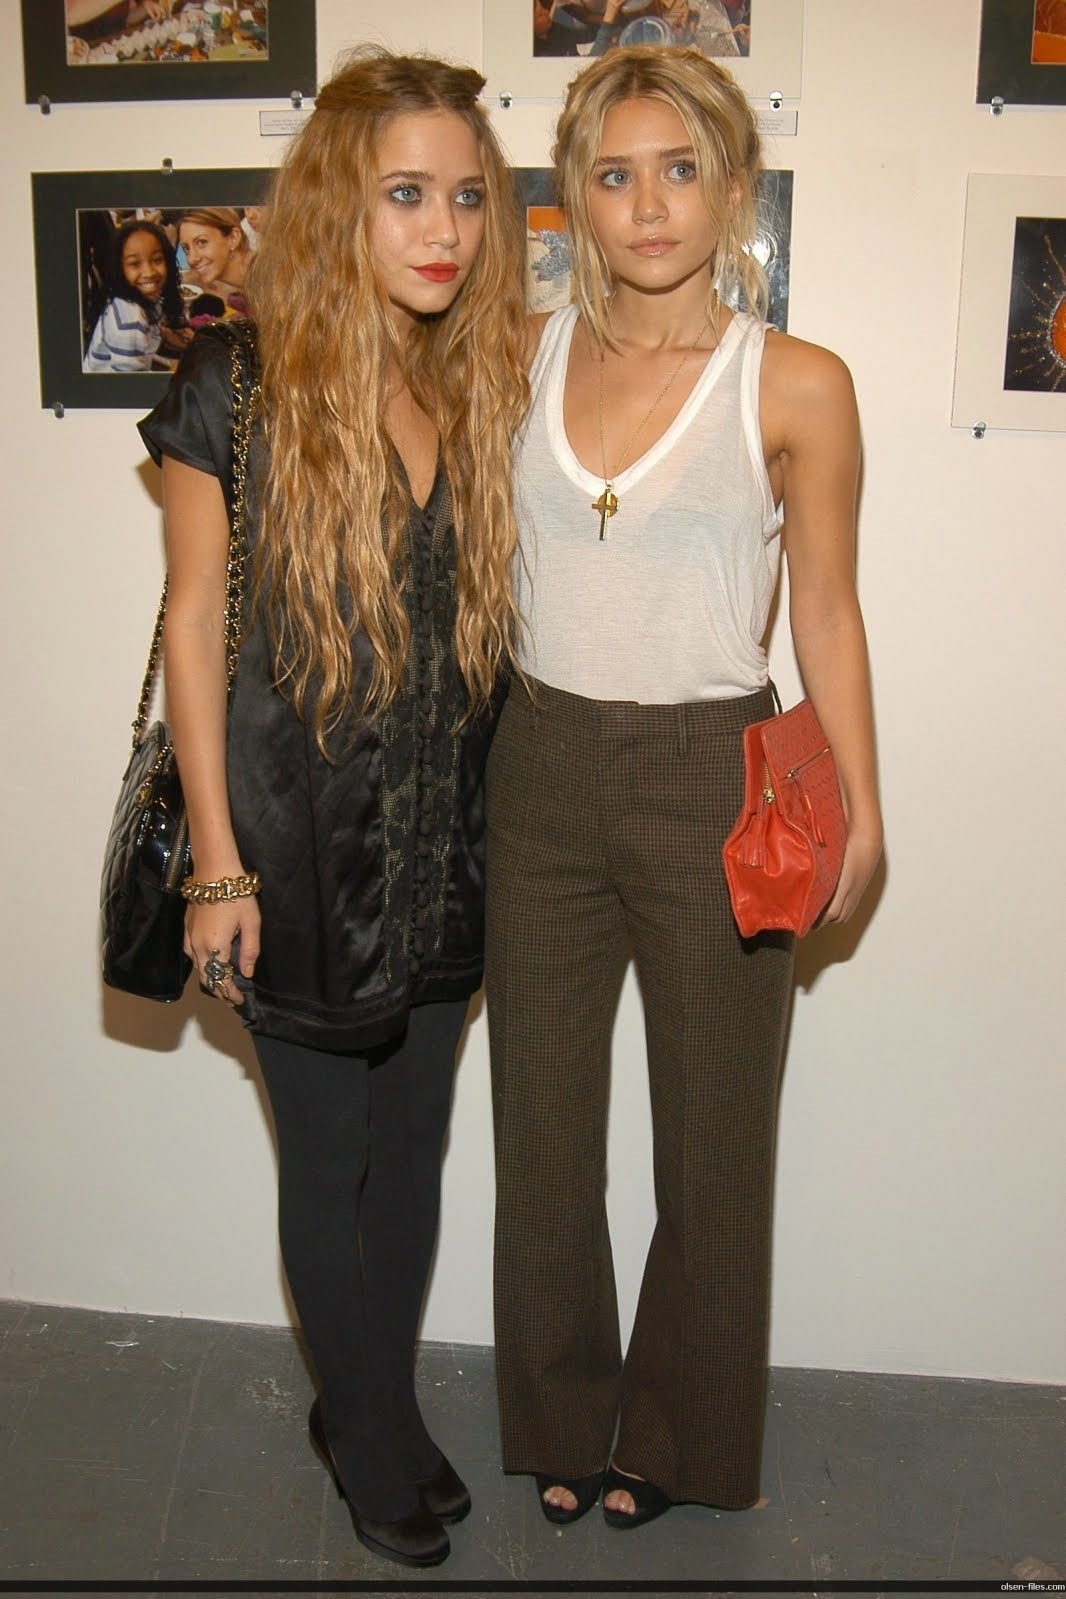 http://3.bp.blogspot.com/_kBNvSPkD6hk/SxPL5VoI7UI/AAAAAAAAATs/FGqbnfkceTg/s1600/mary-kate-and-ashley-olsen.jpg